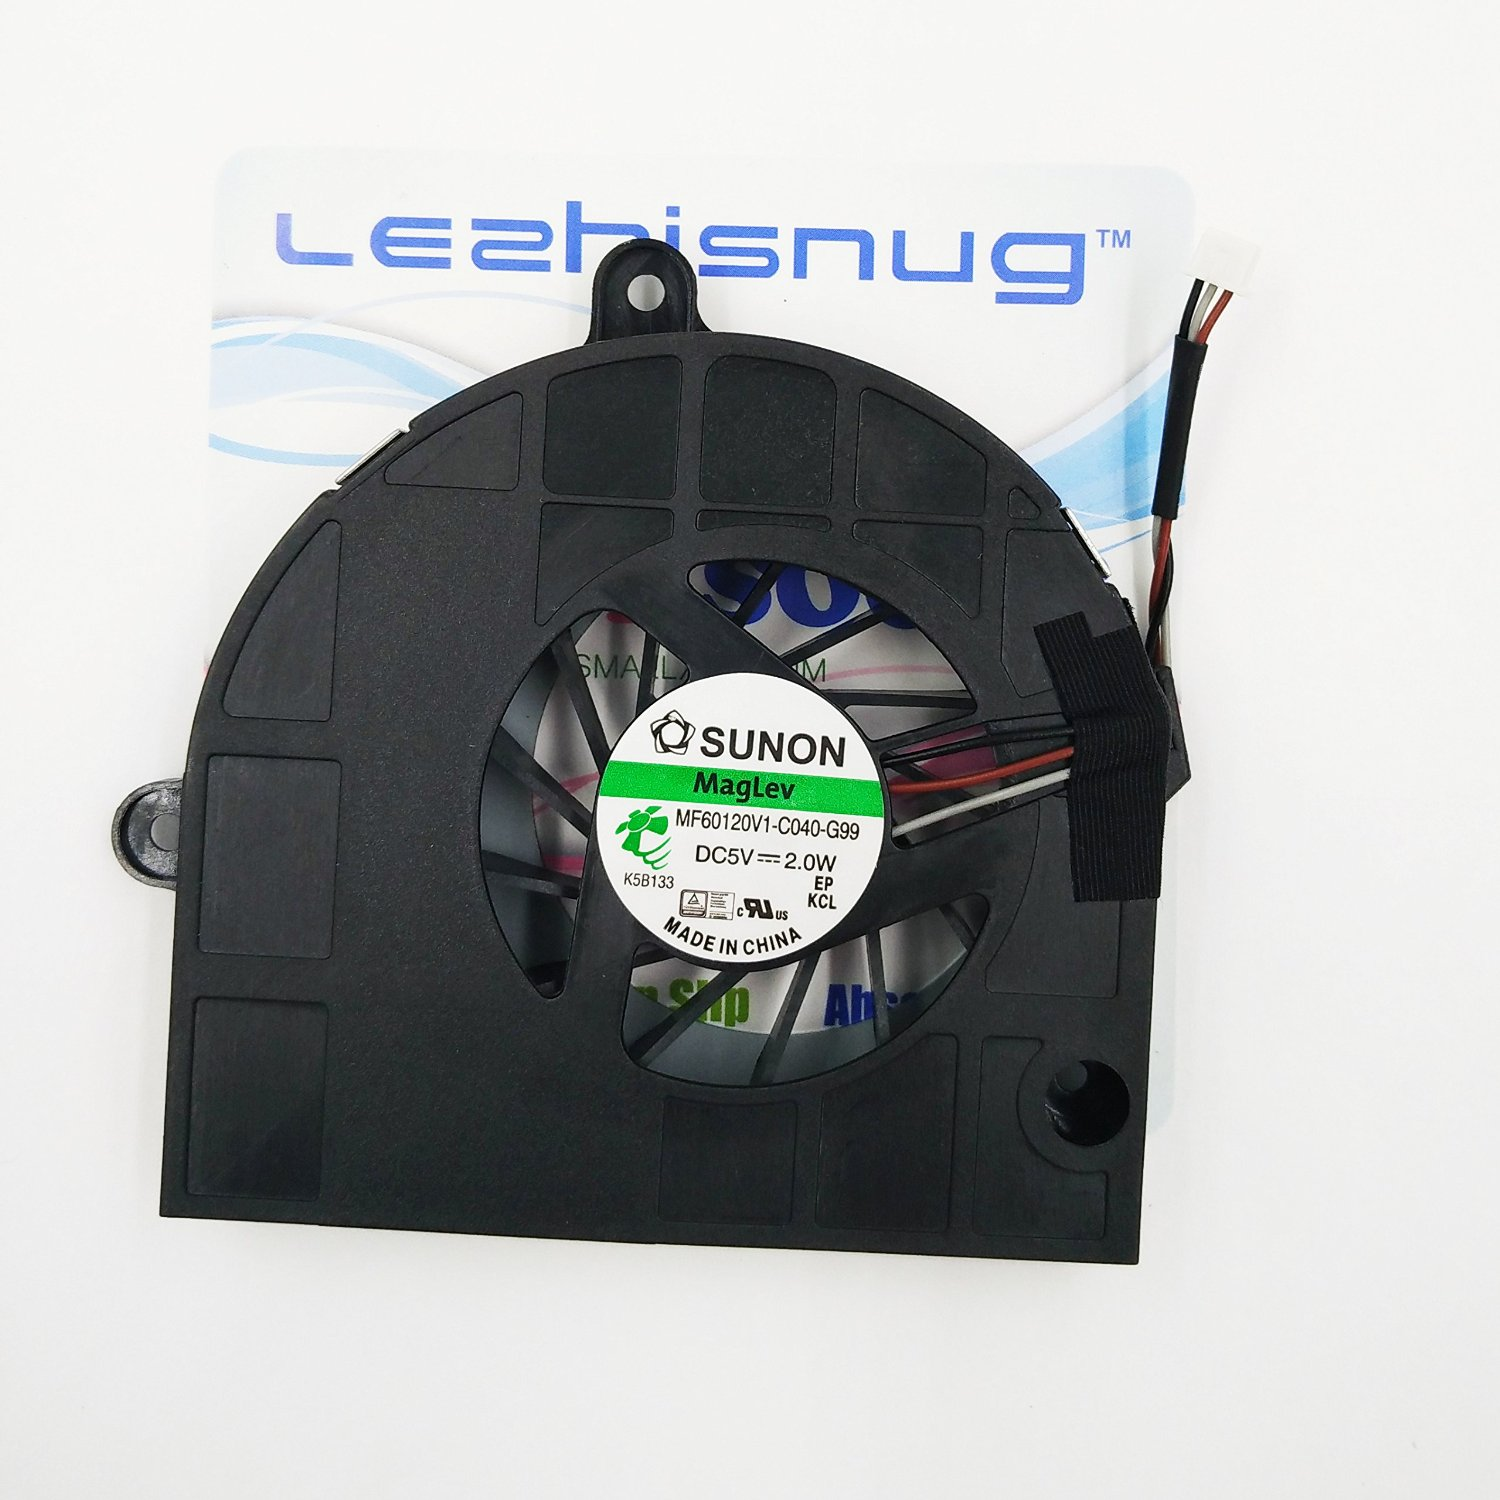 New Laptop CPU Cooling Fan for Acer Aspire 5333 5733 5733Z 5742 5742G 5742Z 5742ZG 5336 5736 5736G 5736Z 5253 5253G eMachines E529 Series MF60120V1-C040-G99 DC2800092S0